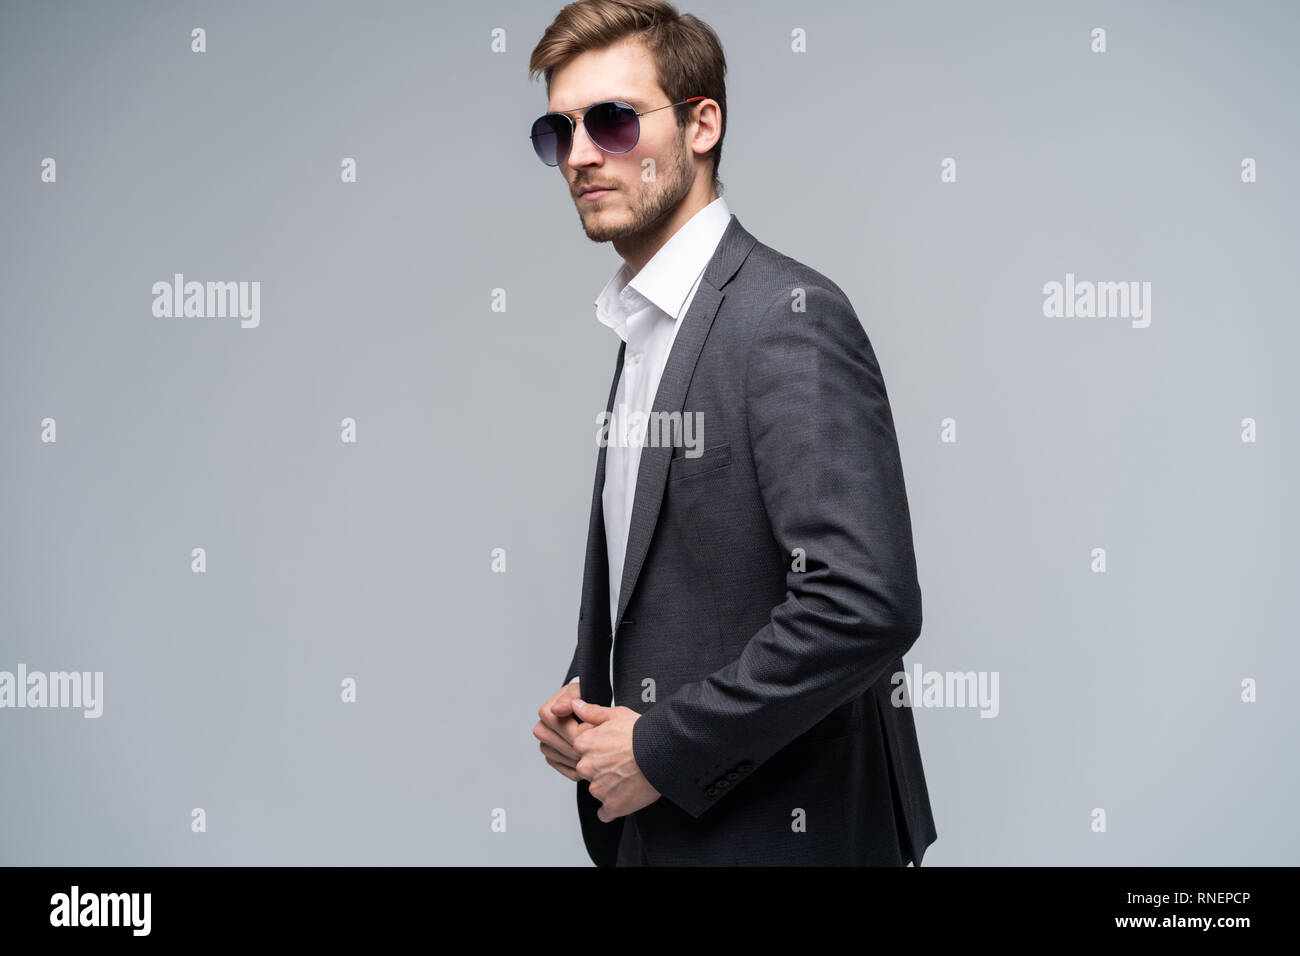 ef517861ea3f Feeling free and comfortable in his style. Handsome young man in full suit  and sunglasses moving in front of gray background.